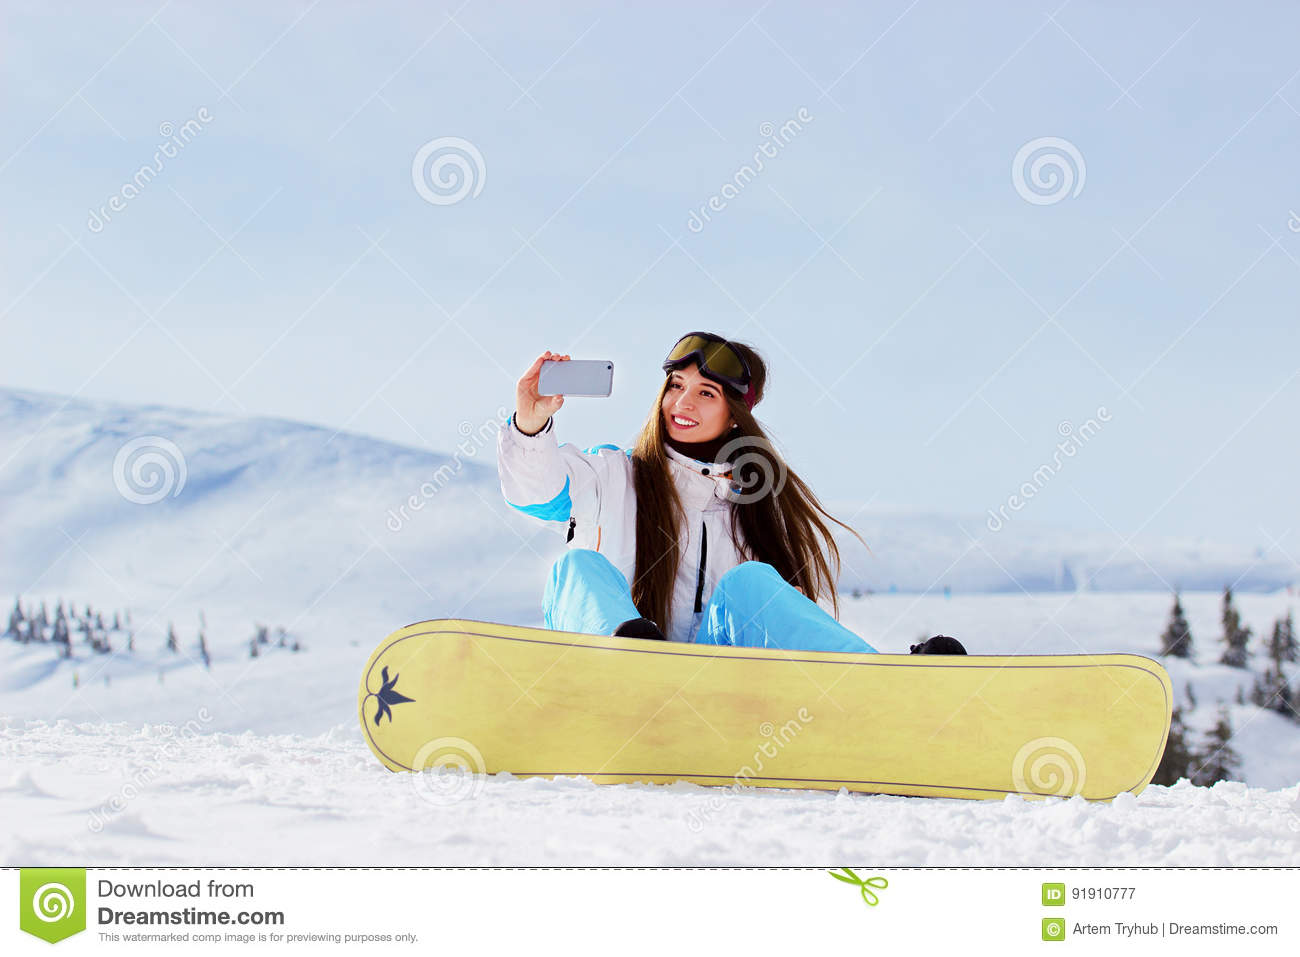 a2e13a7476 Young beautiful snowboarding girl with googles on her head taking selfie  with snowboard in the snowy